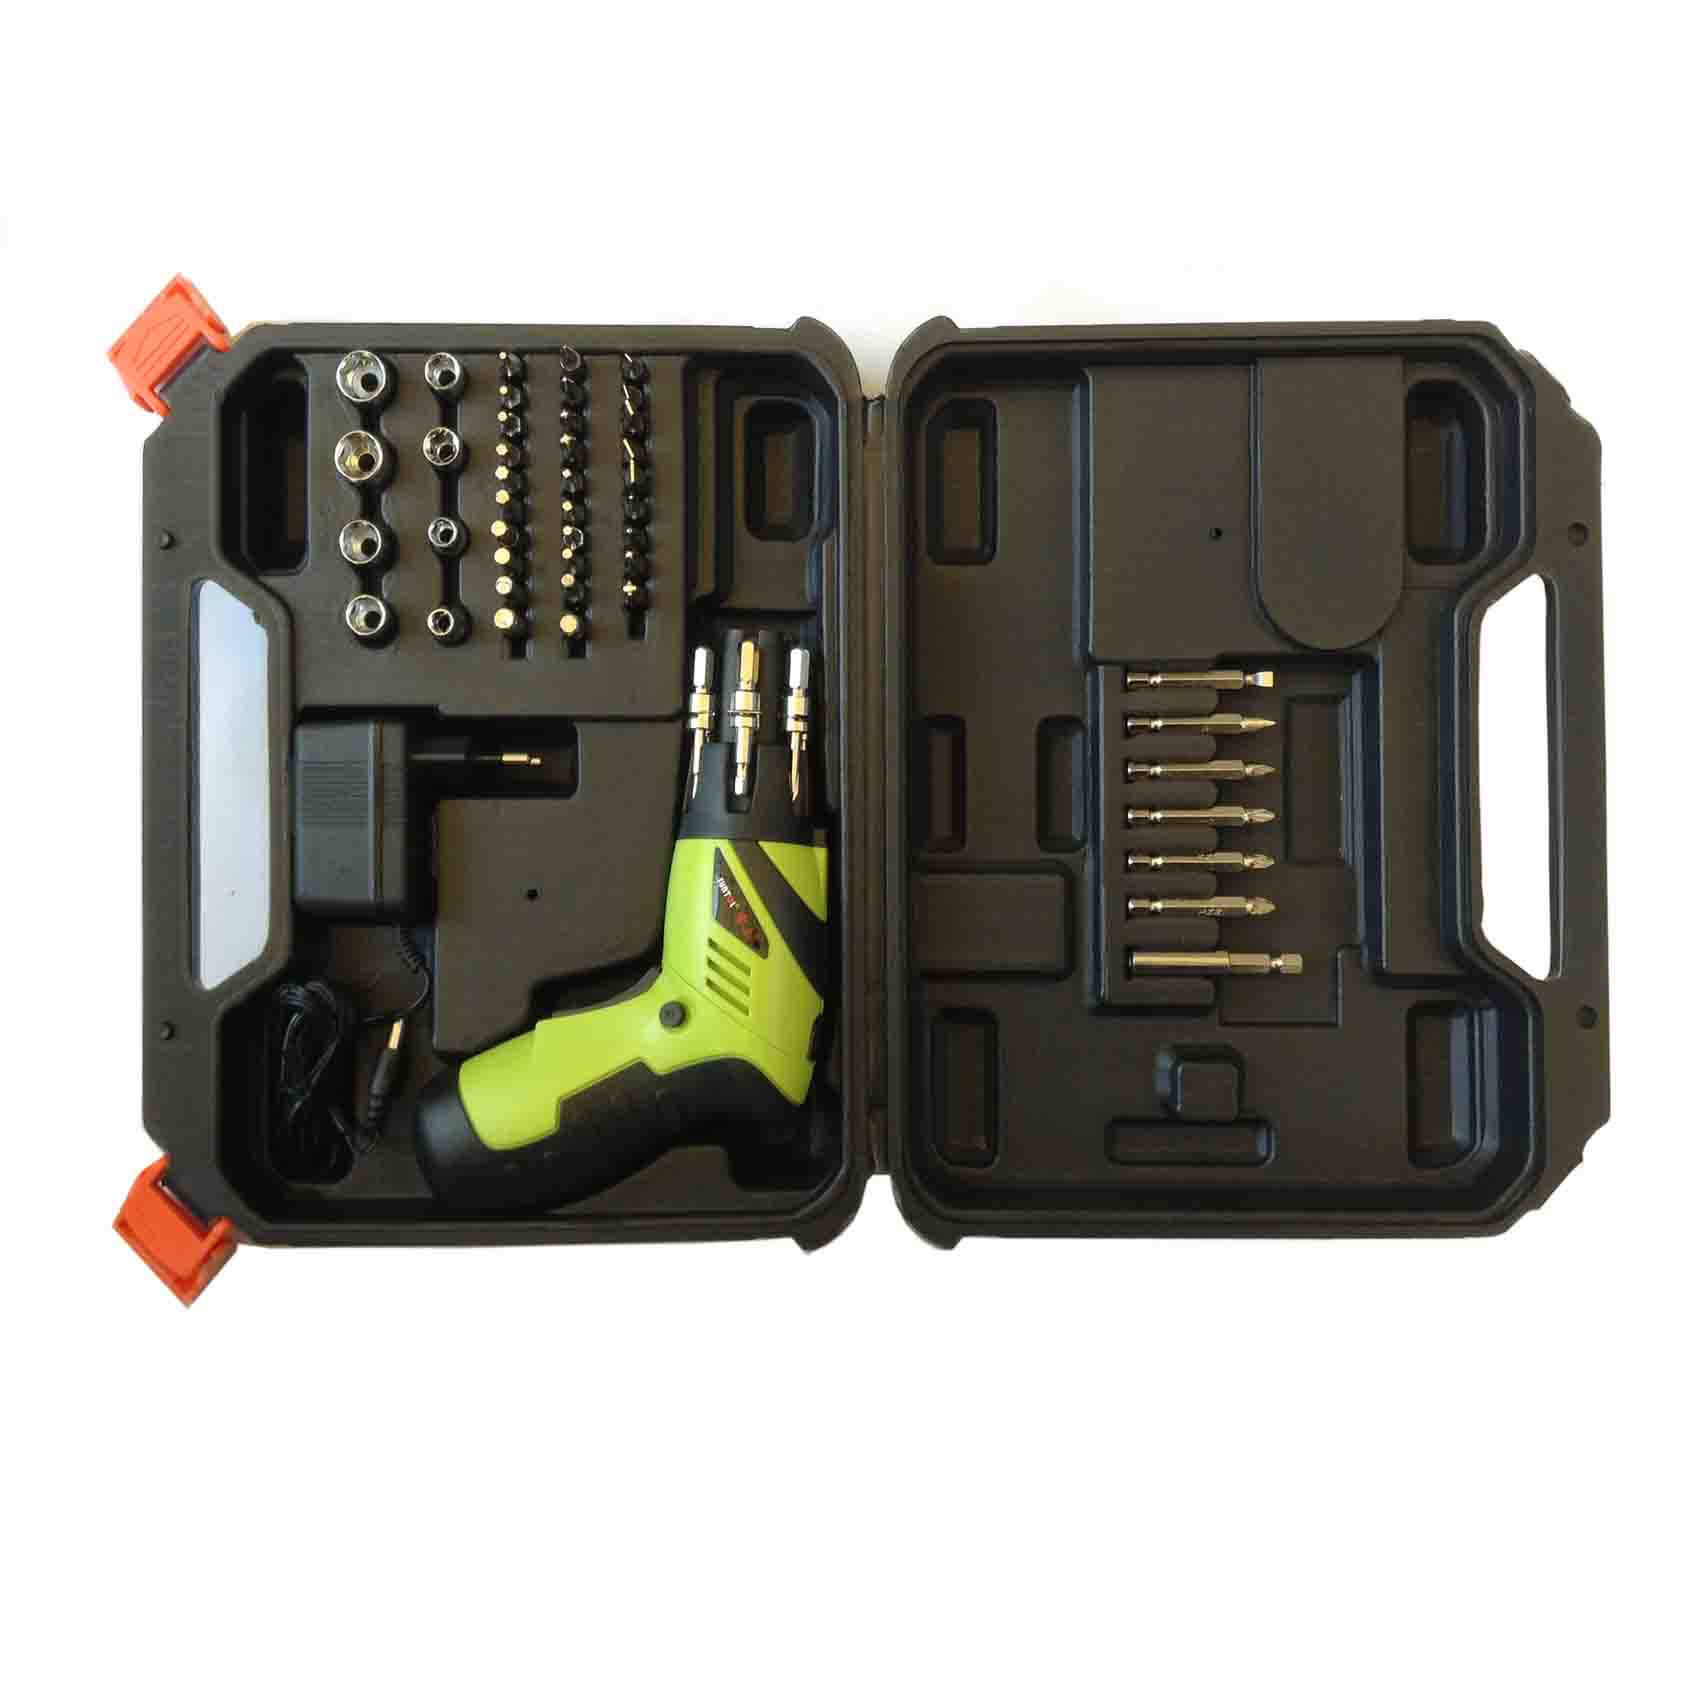 SND131BT  Li-ion battery cordless screwdriver